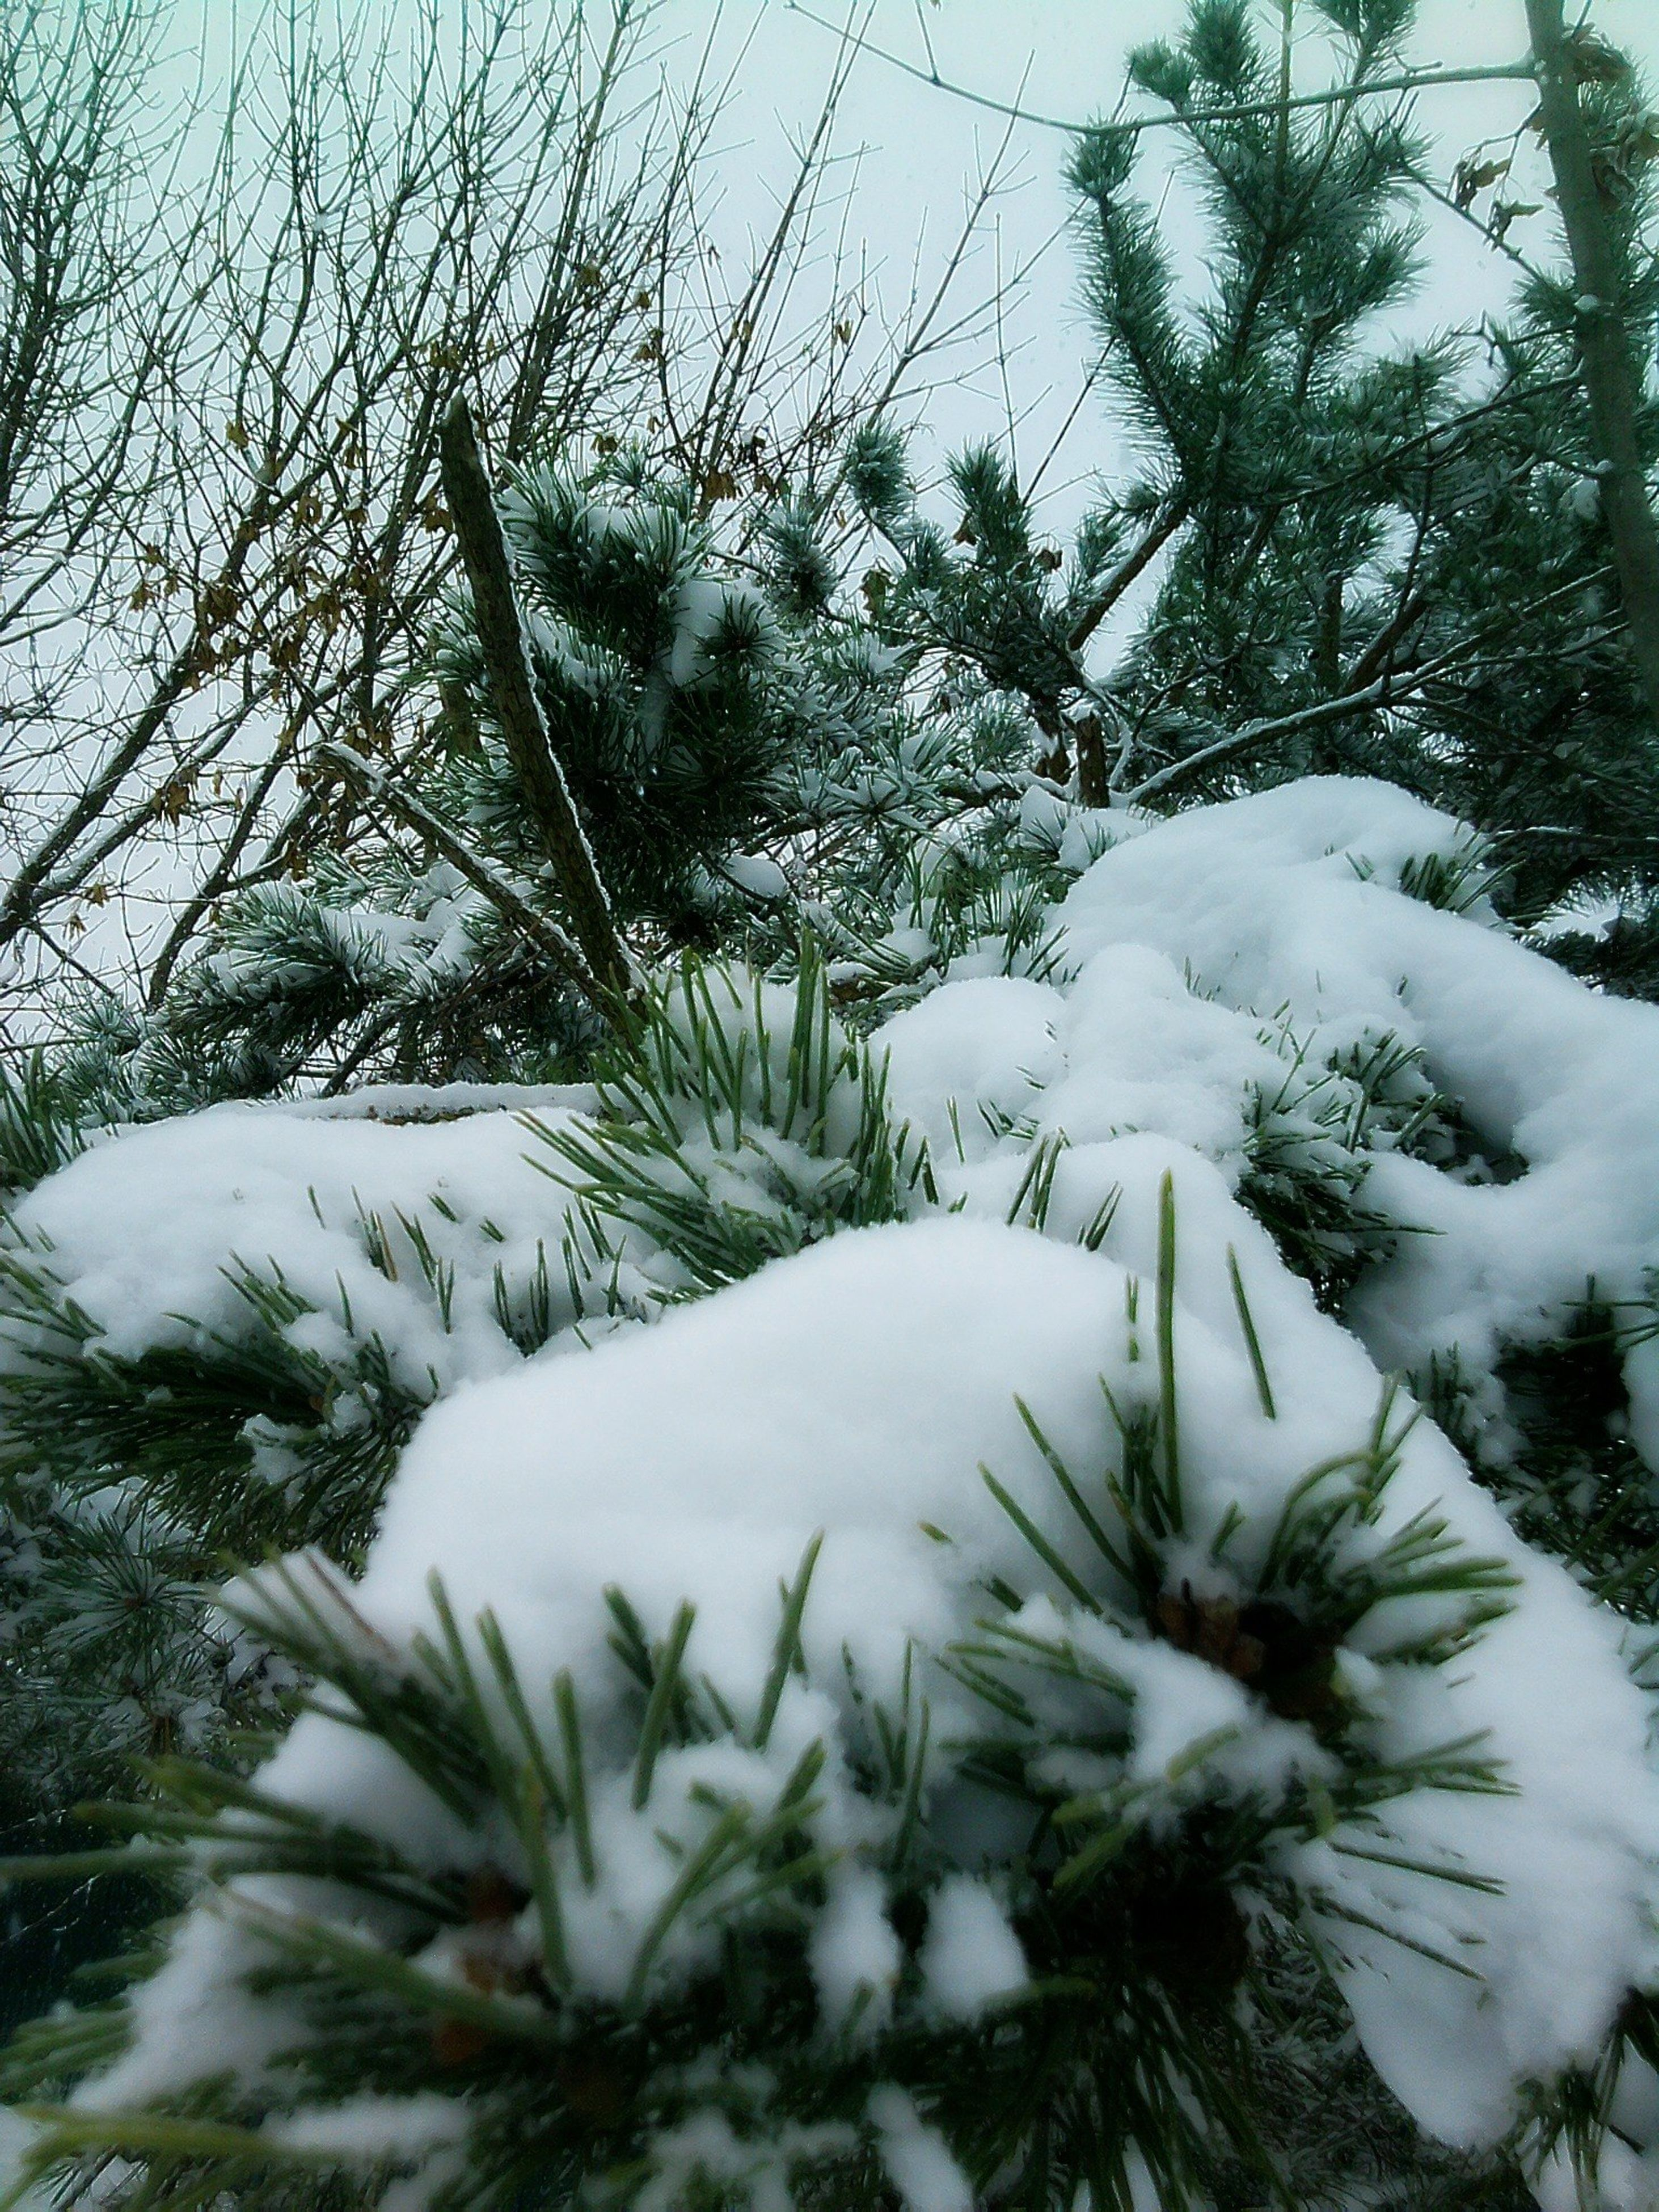 snow, winter, cold temperature, season, tree, weather, white color, covering, frozen, nature, beauty in nature, growth, tranquility, covered, branch, tranquil scene, scenics, outdoors, day, sky